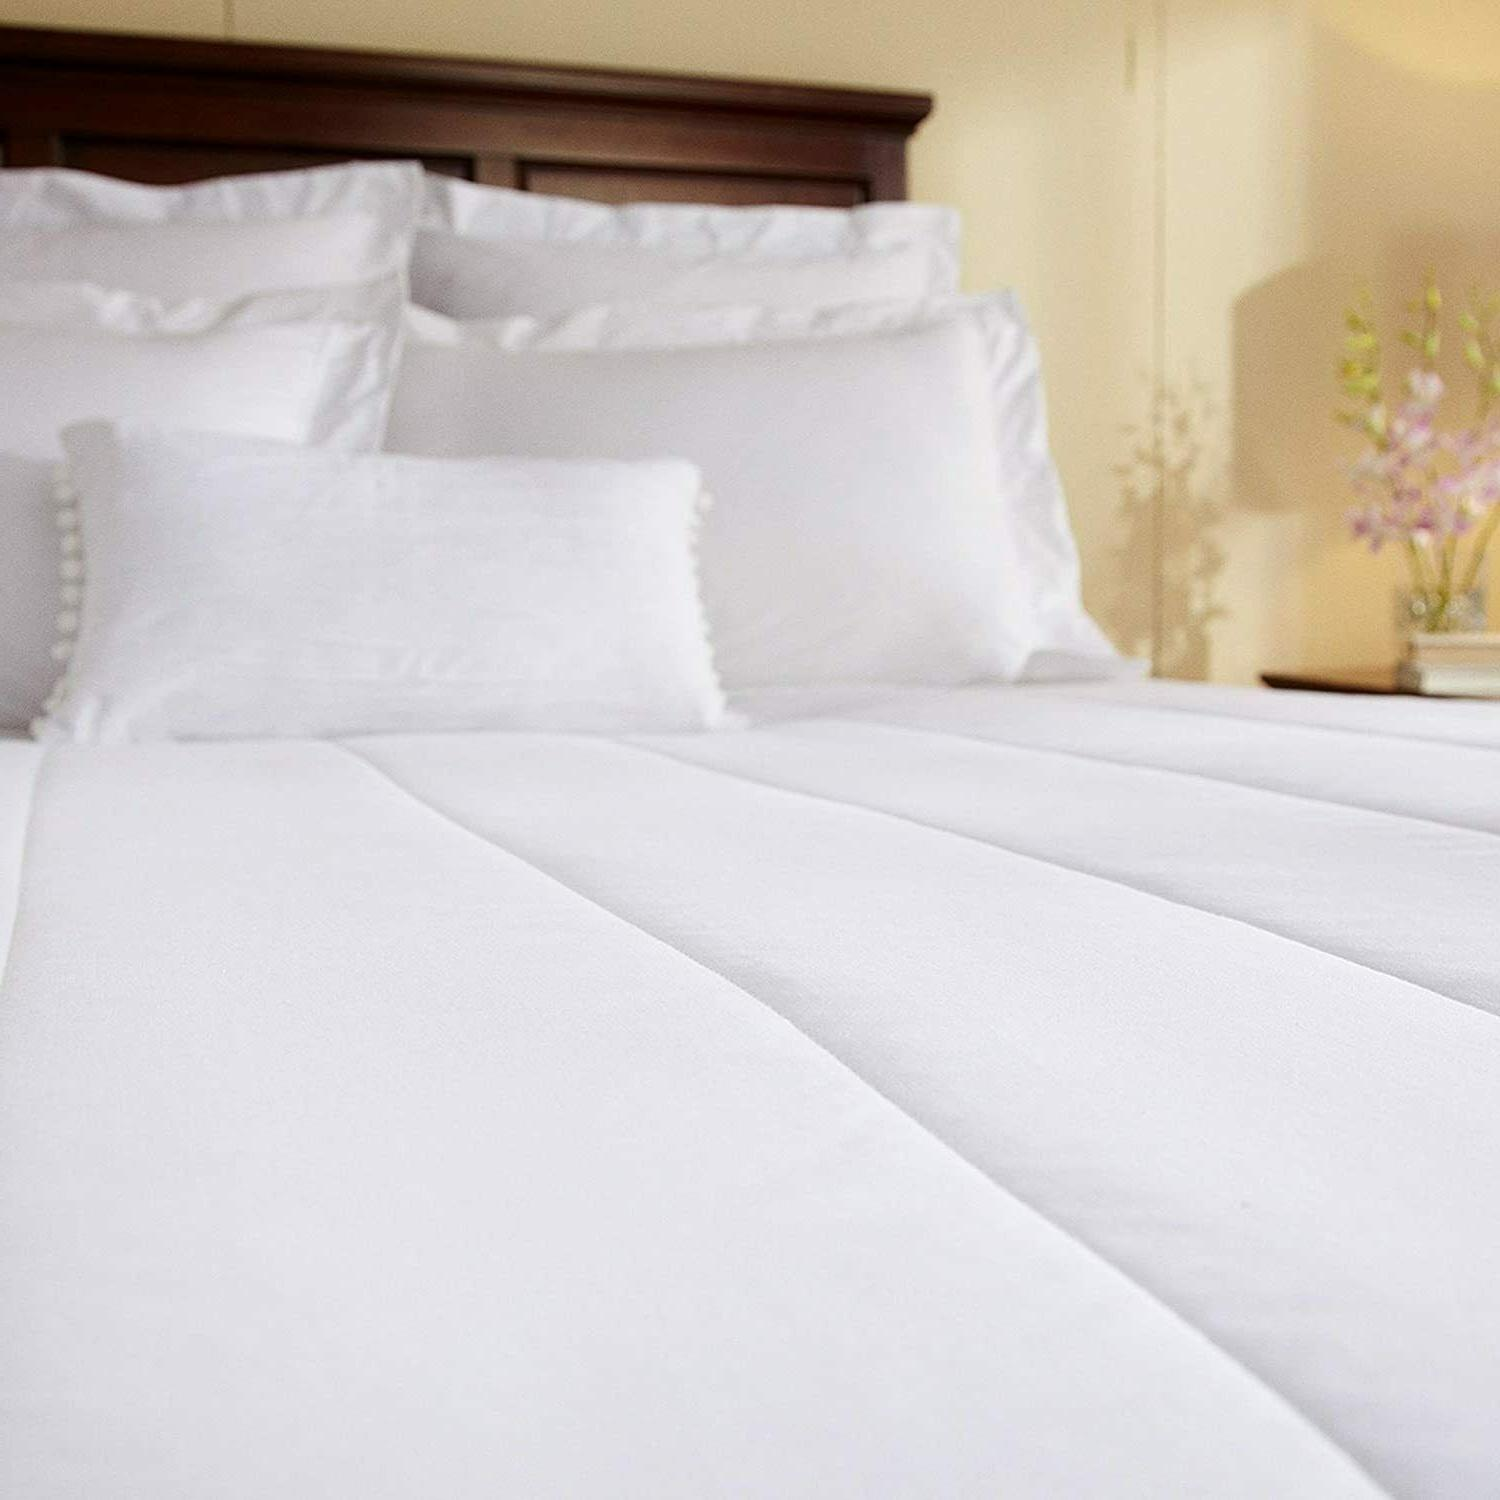 heated queen size mattress pad dual control